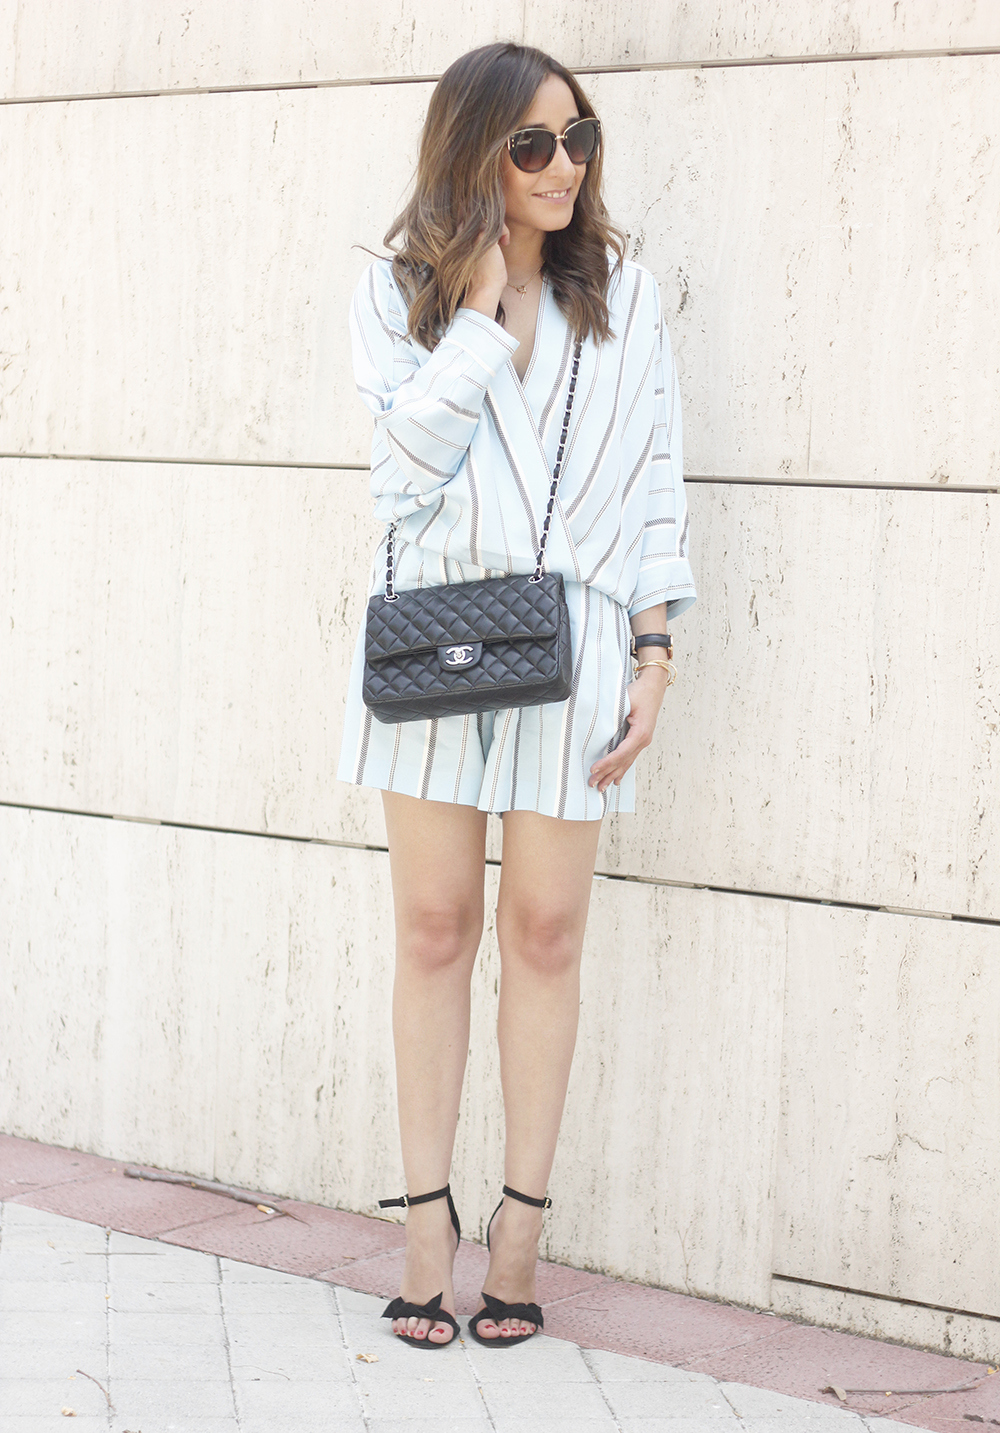 Maje Jumpsuit with stripes black heels chanel bag summer outfit street style fashion07